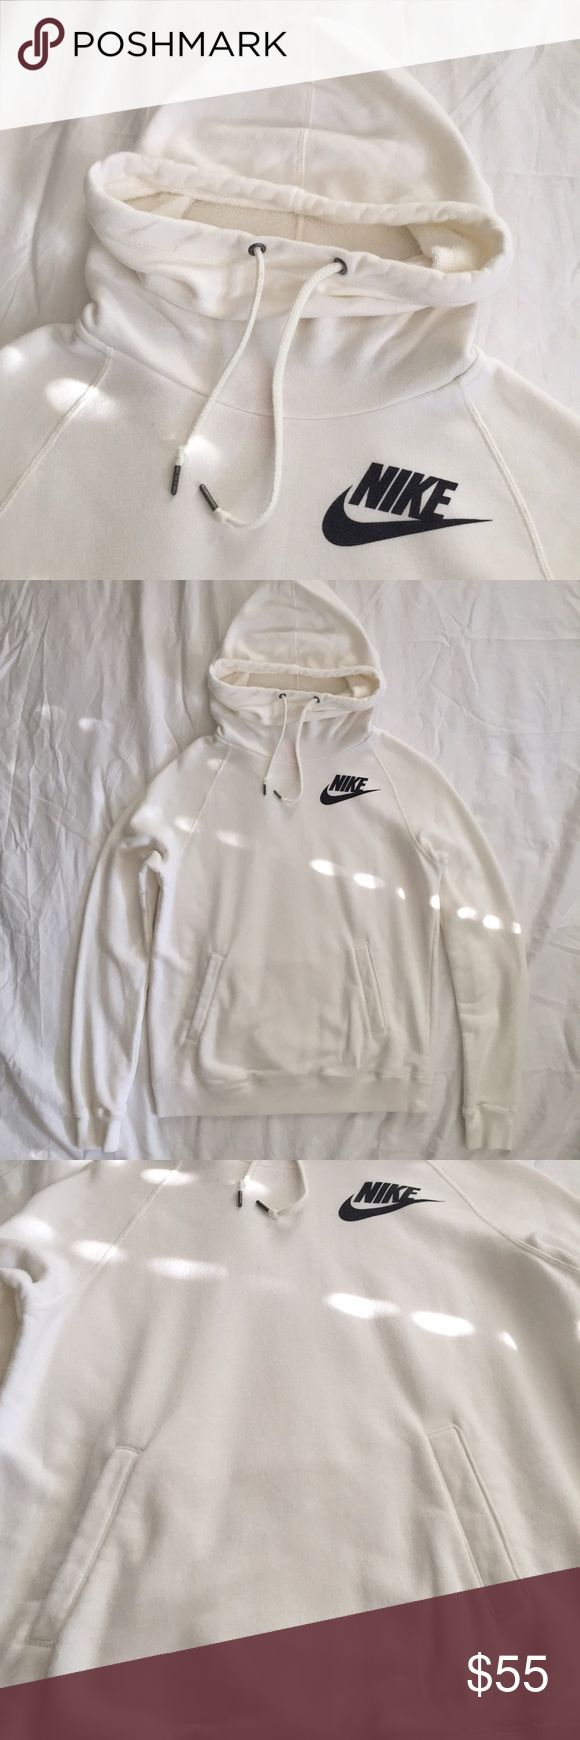 Nike Women's High Collar Hoodie Nike High Collar Hooded Sweater with Draw String and Kangaroo Pocket. Great condition! No holes stains or rips! Nike Sweaters